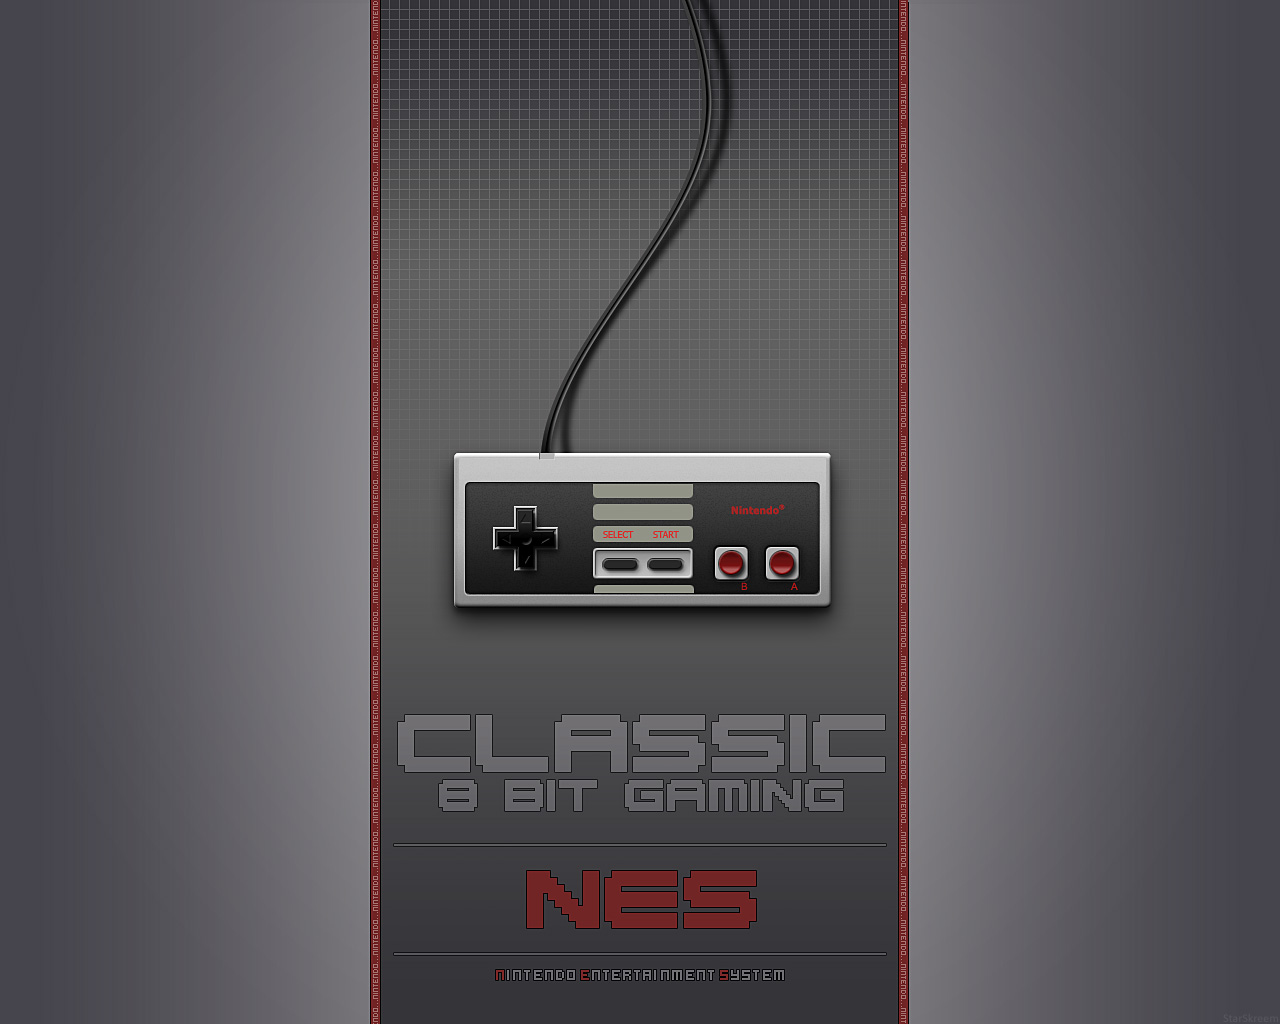 http://1.bp.blogspot.com/-QNpWECFU9i0/UAOZhxsLtvI/AAAAAAAABEc/S-GZx7NkiR8/s1600/classic+nintendo+controller+wallpaper+background+nes+entertainment+system.jpg